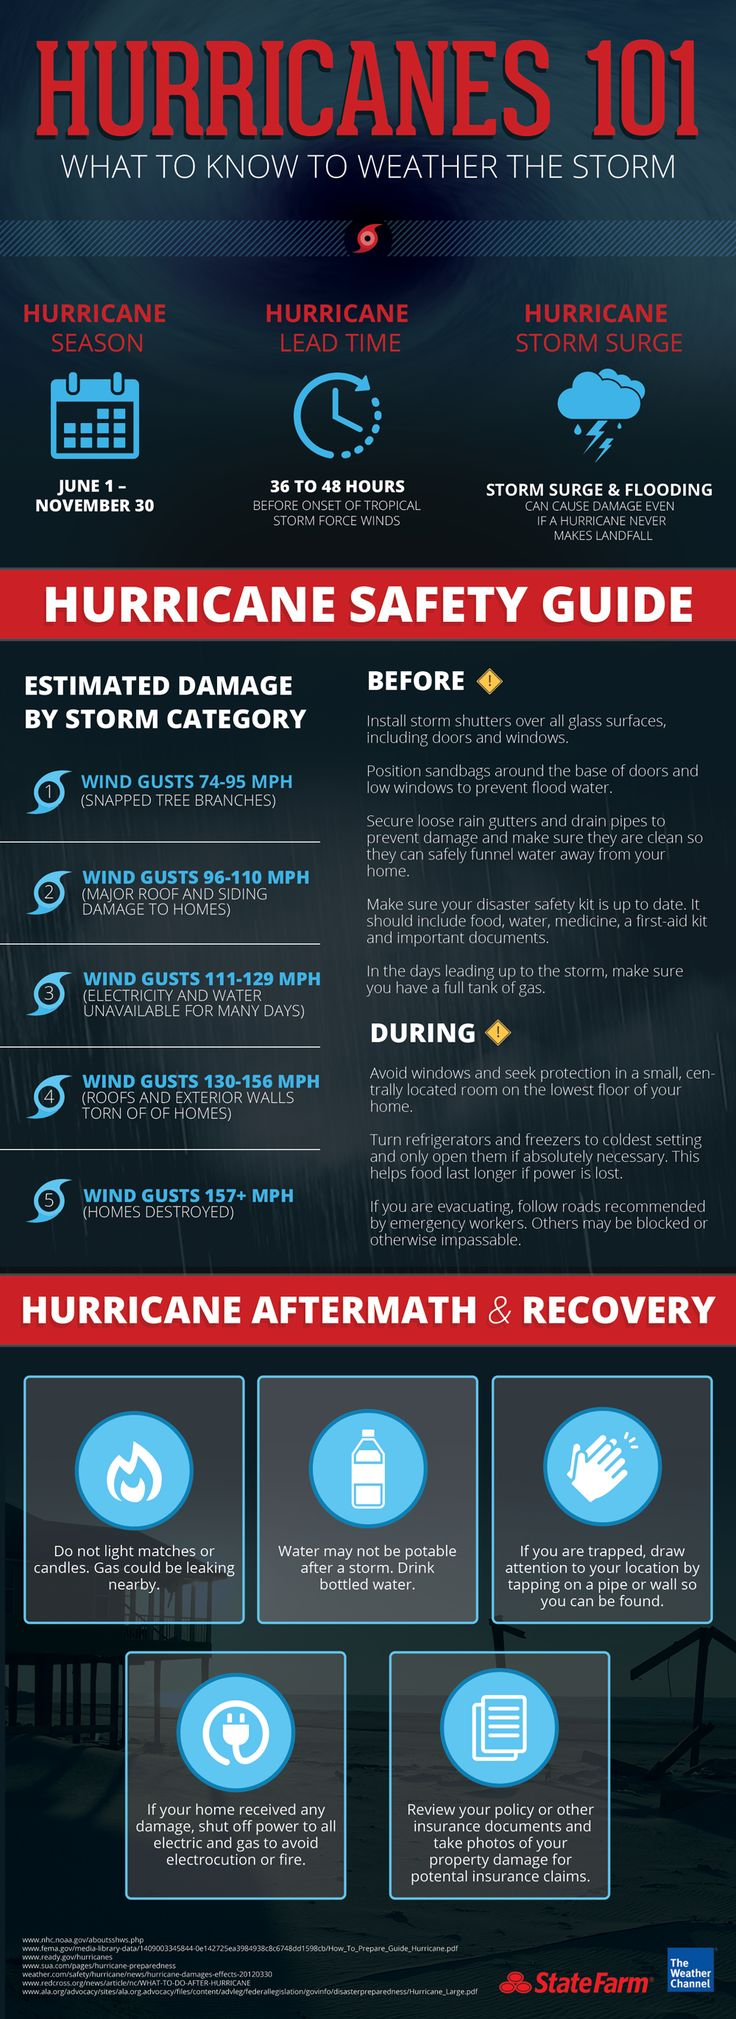 According to weather.com meteorologists, hurricane season 2016 is starting to heat up.  If you live in a coastal region that is prone or susceptible to hurricanes, don't get caught unprepared. Brush up on your hurricane knowledge before the next storm hits.